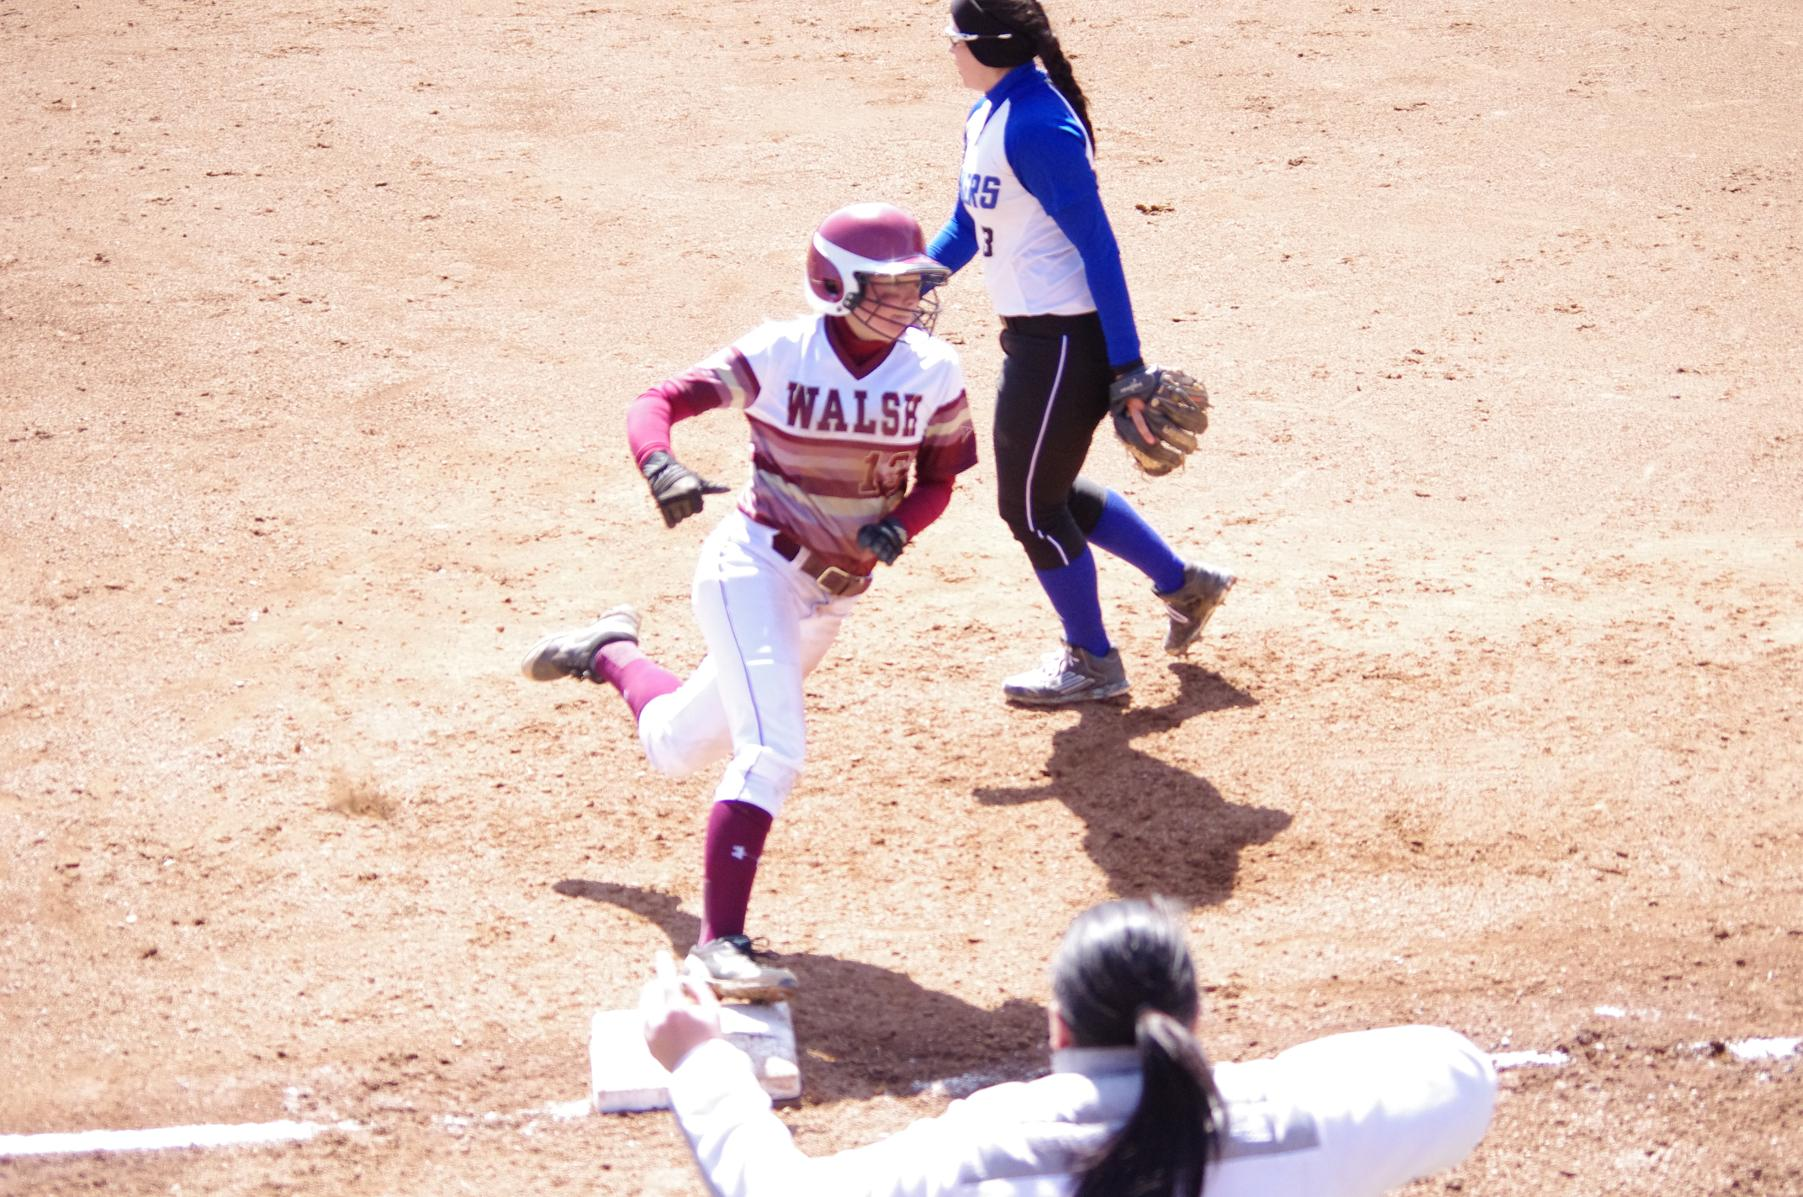 Walsh Softball Splits With Trevecca Nazarene